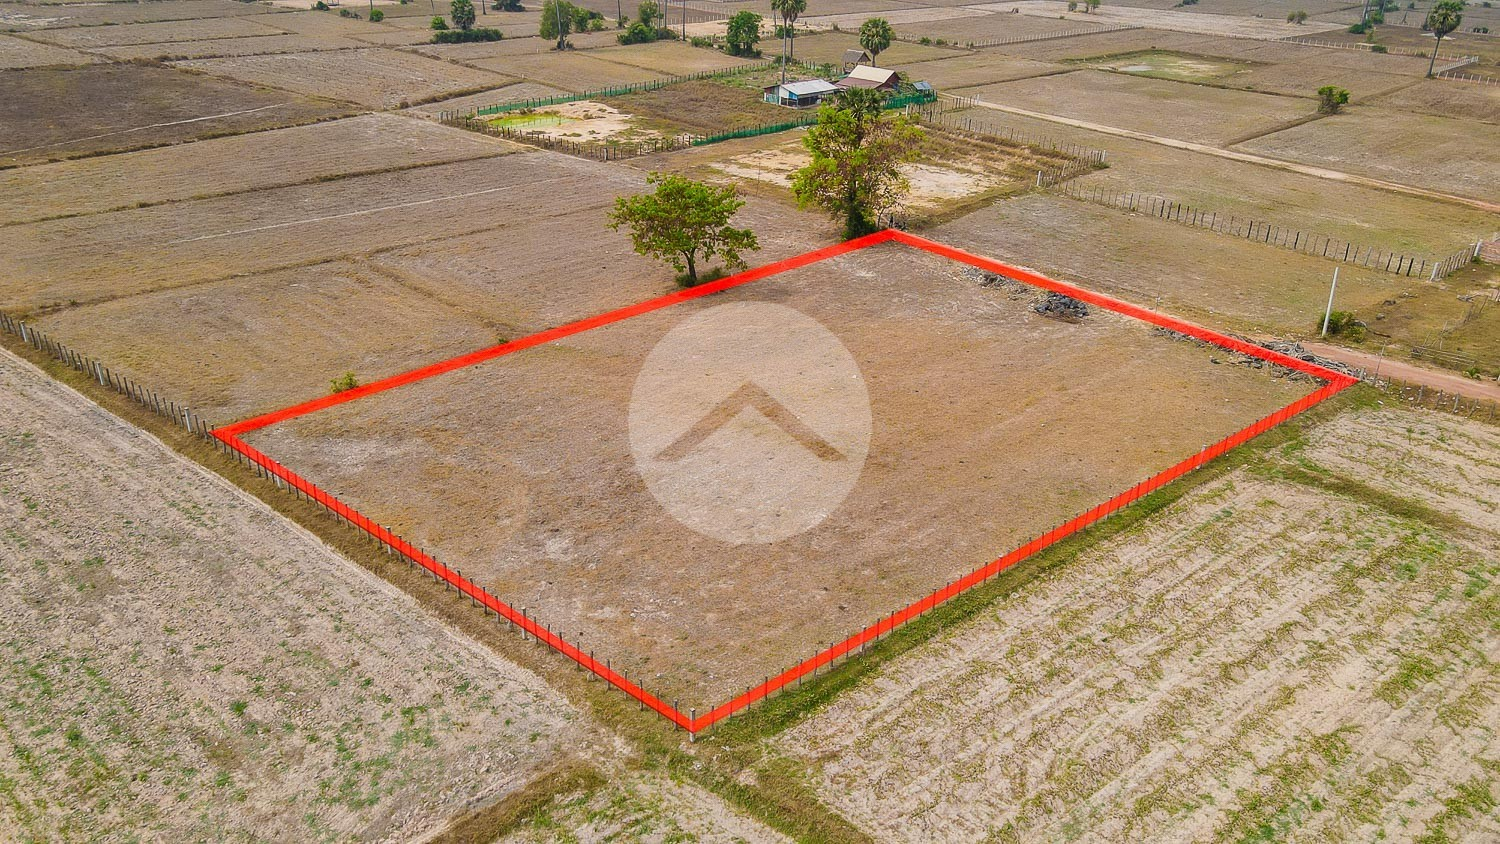 2898 Sqm Residential Land For Sale - Svay Thom, Siem Reap